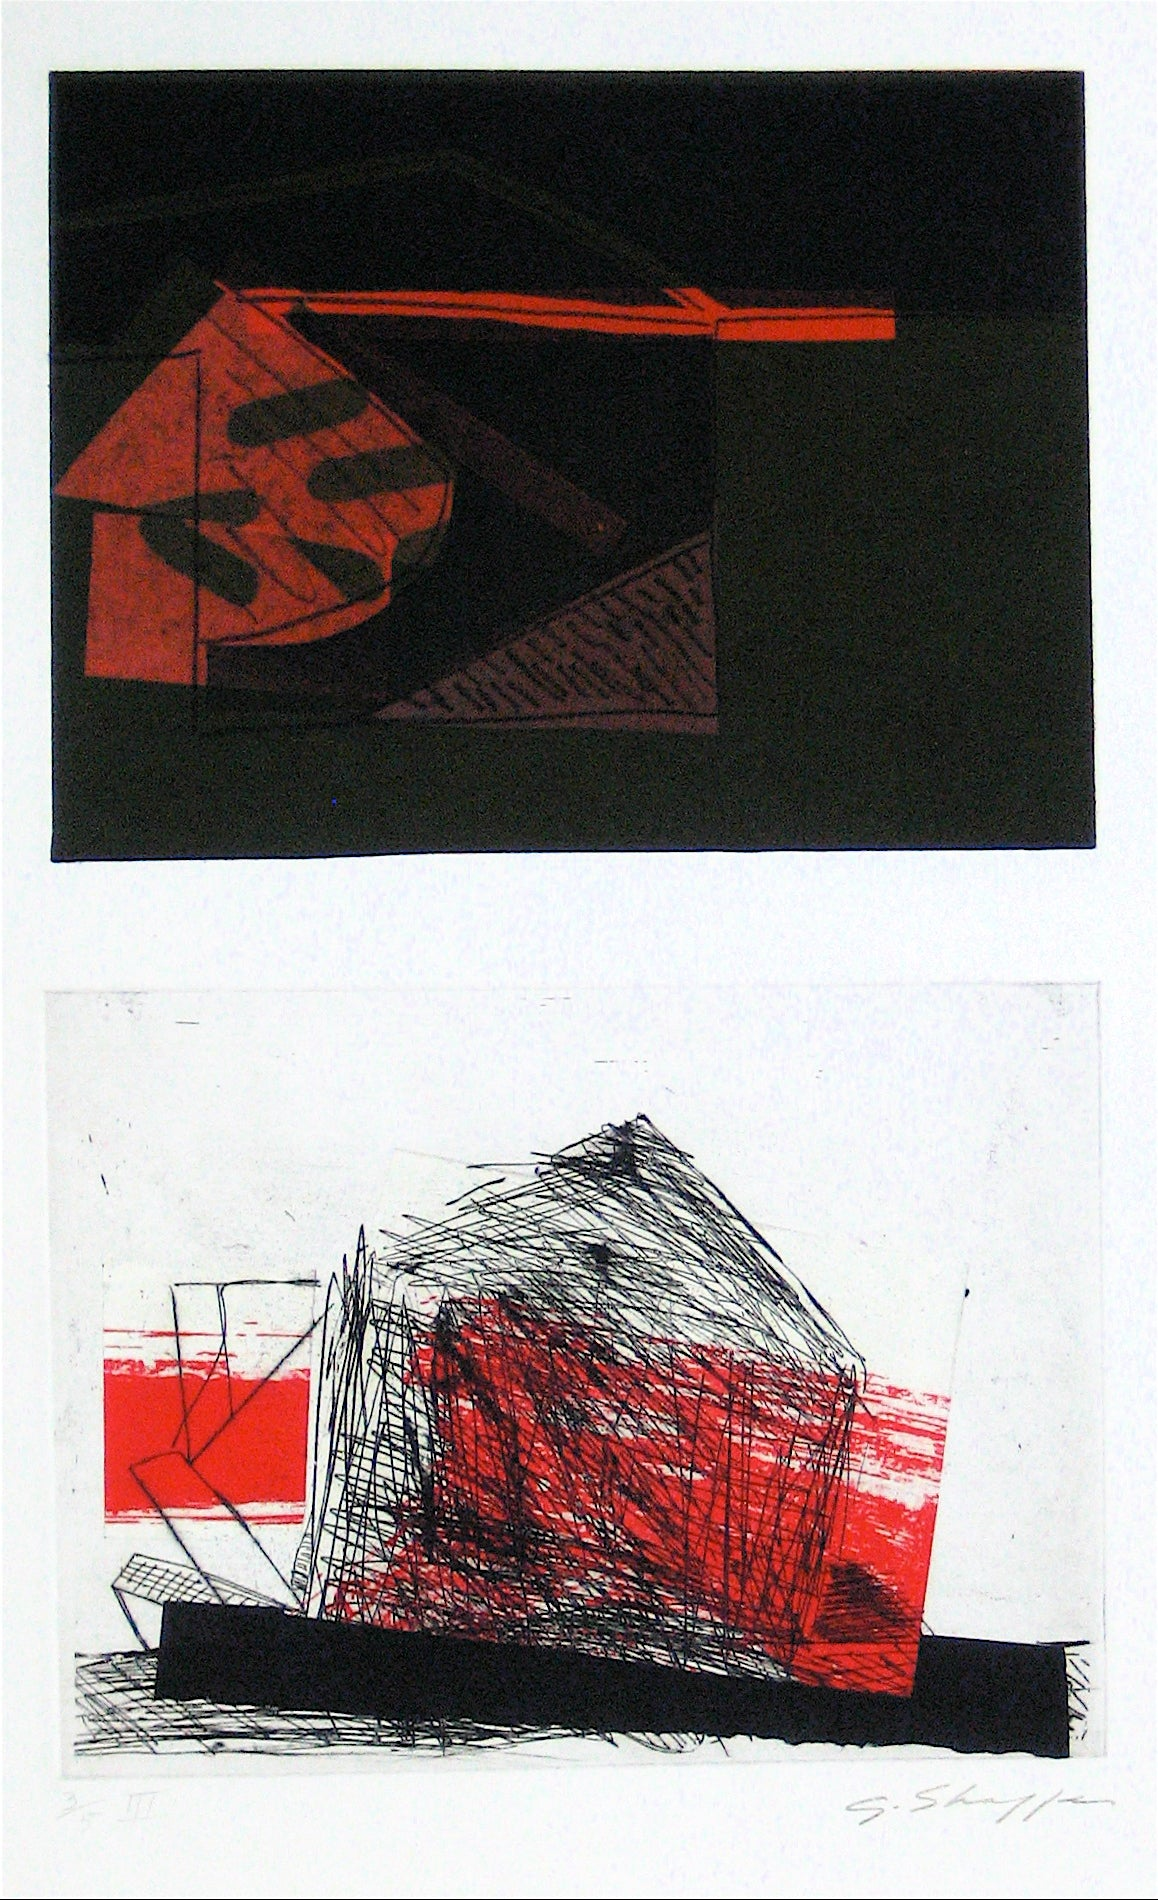 Abstracted Duel Image <br>1989 Litho & Chine Colle <br><br>#11773